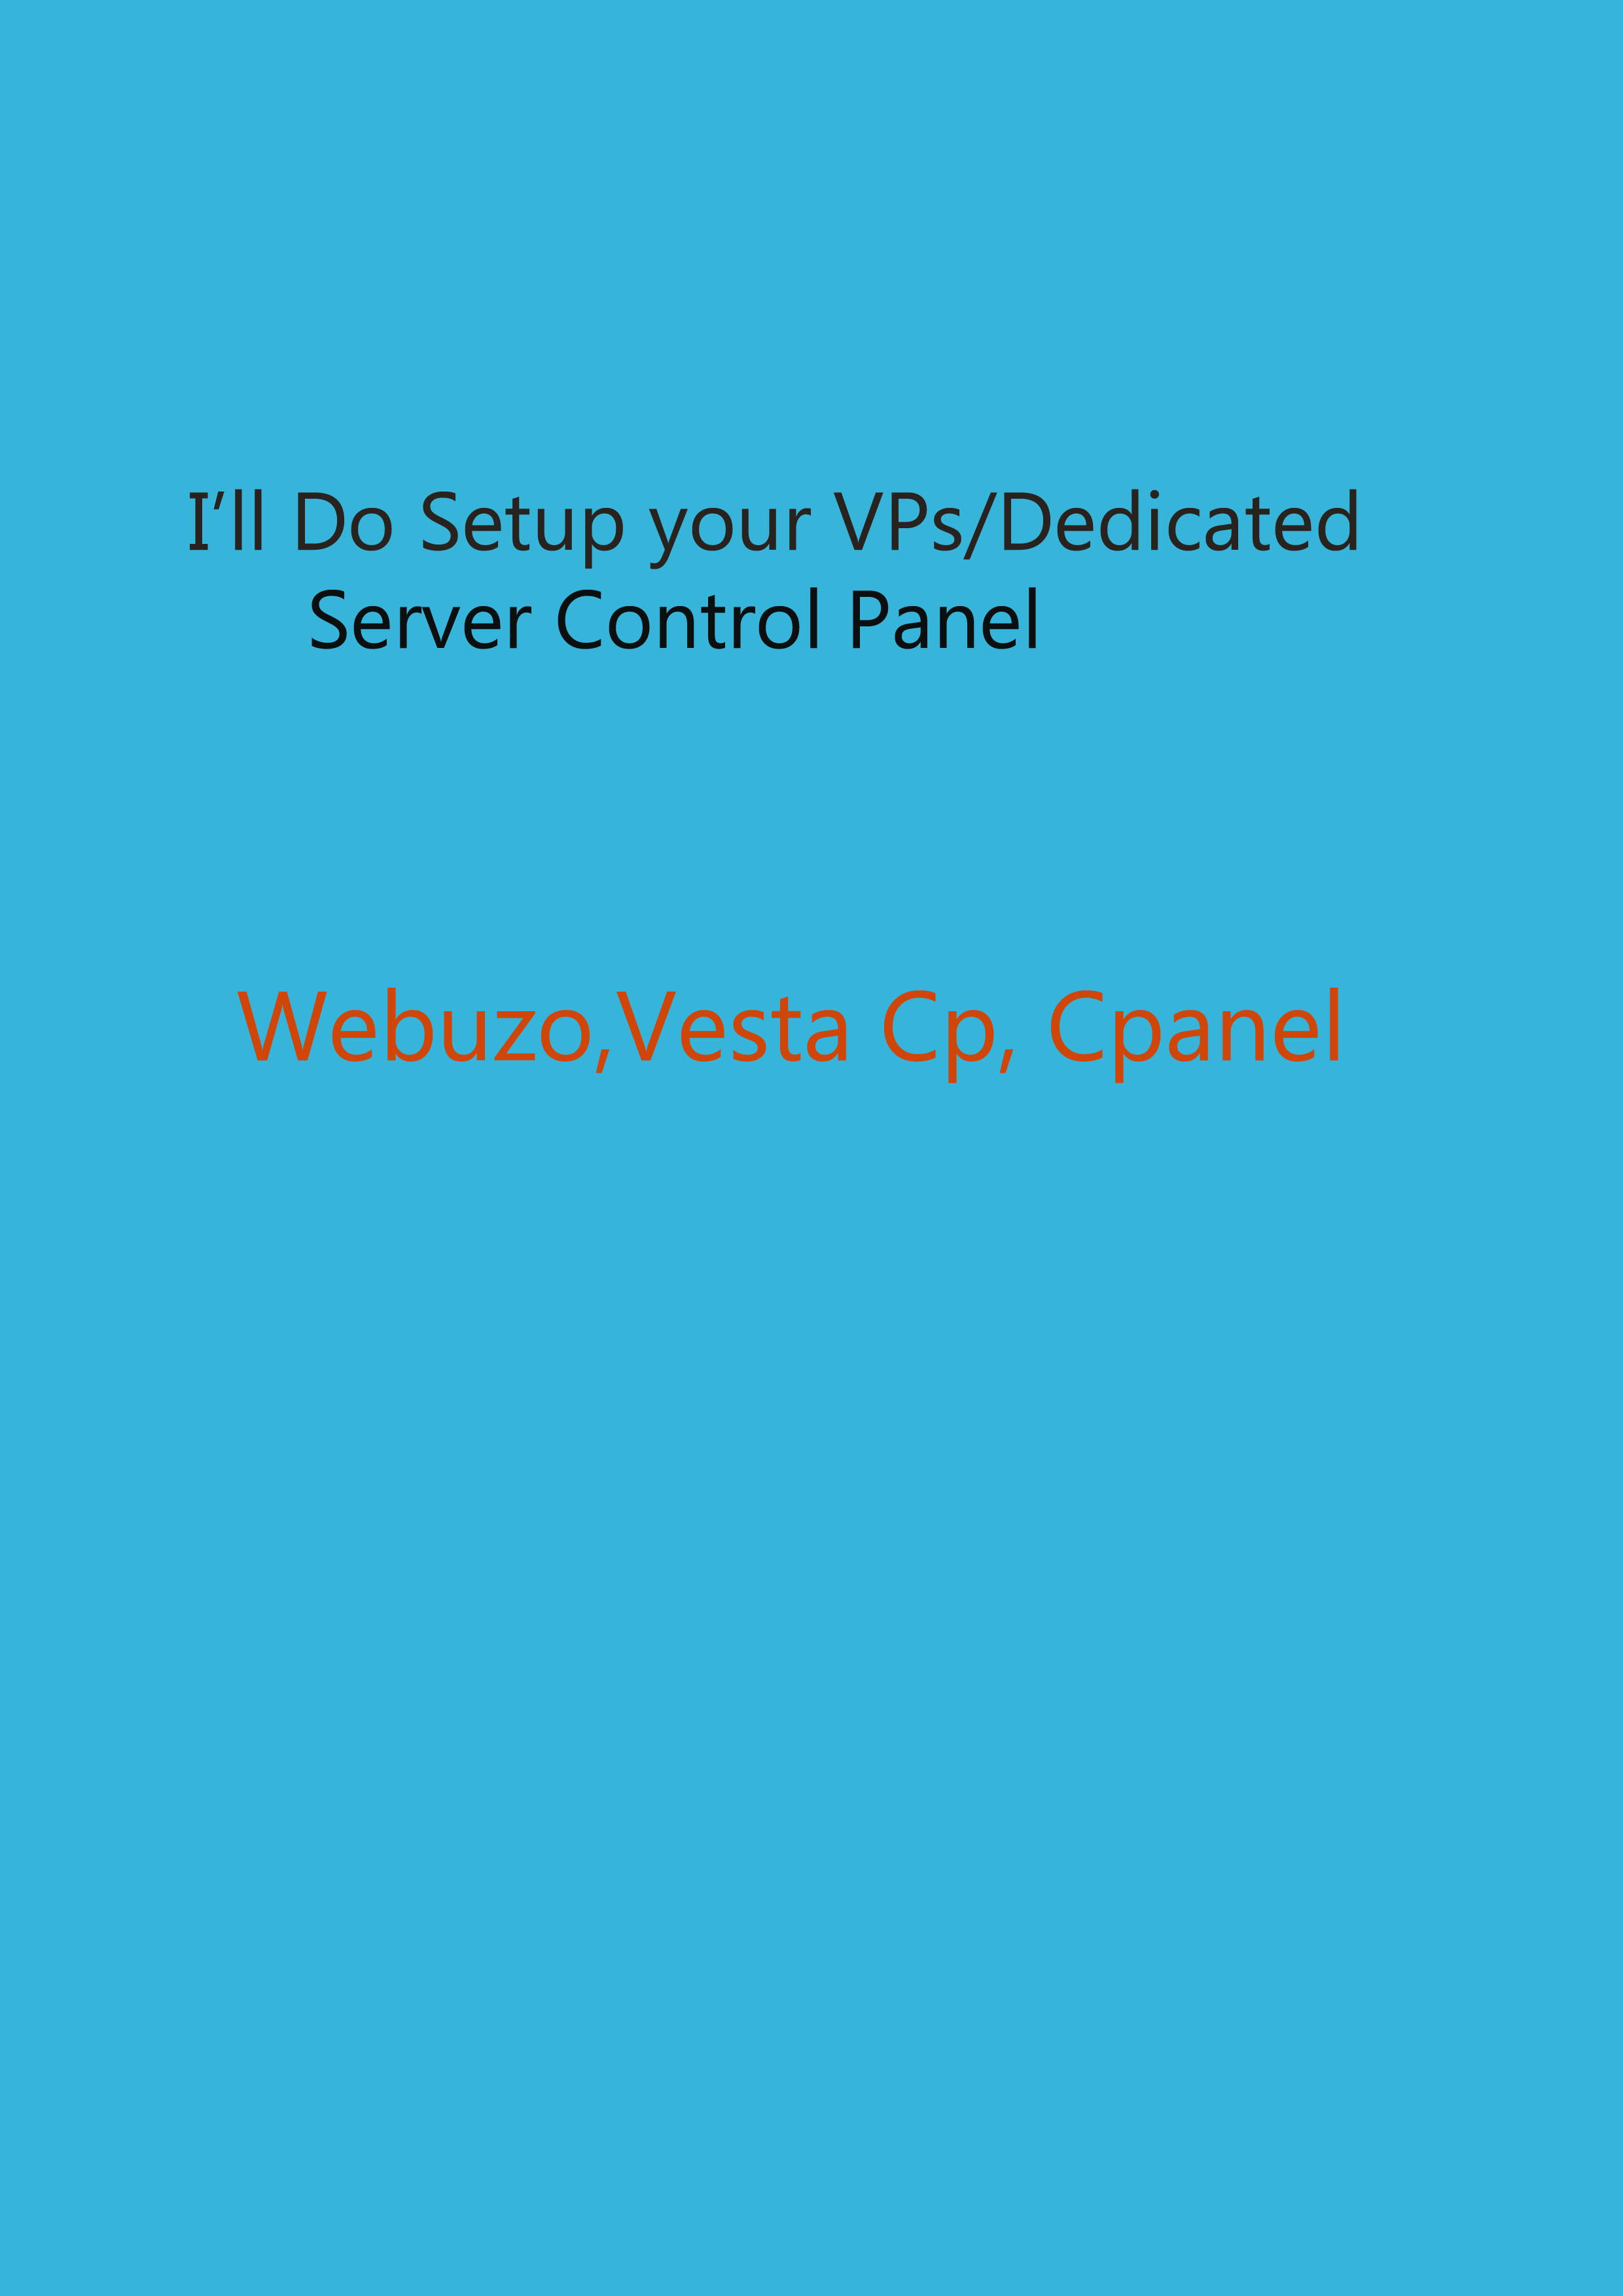 I'll Do Setup your VPs/Dedicated Server Control Panel